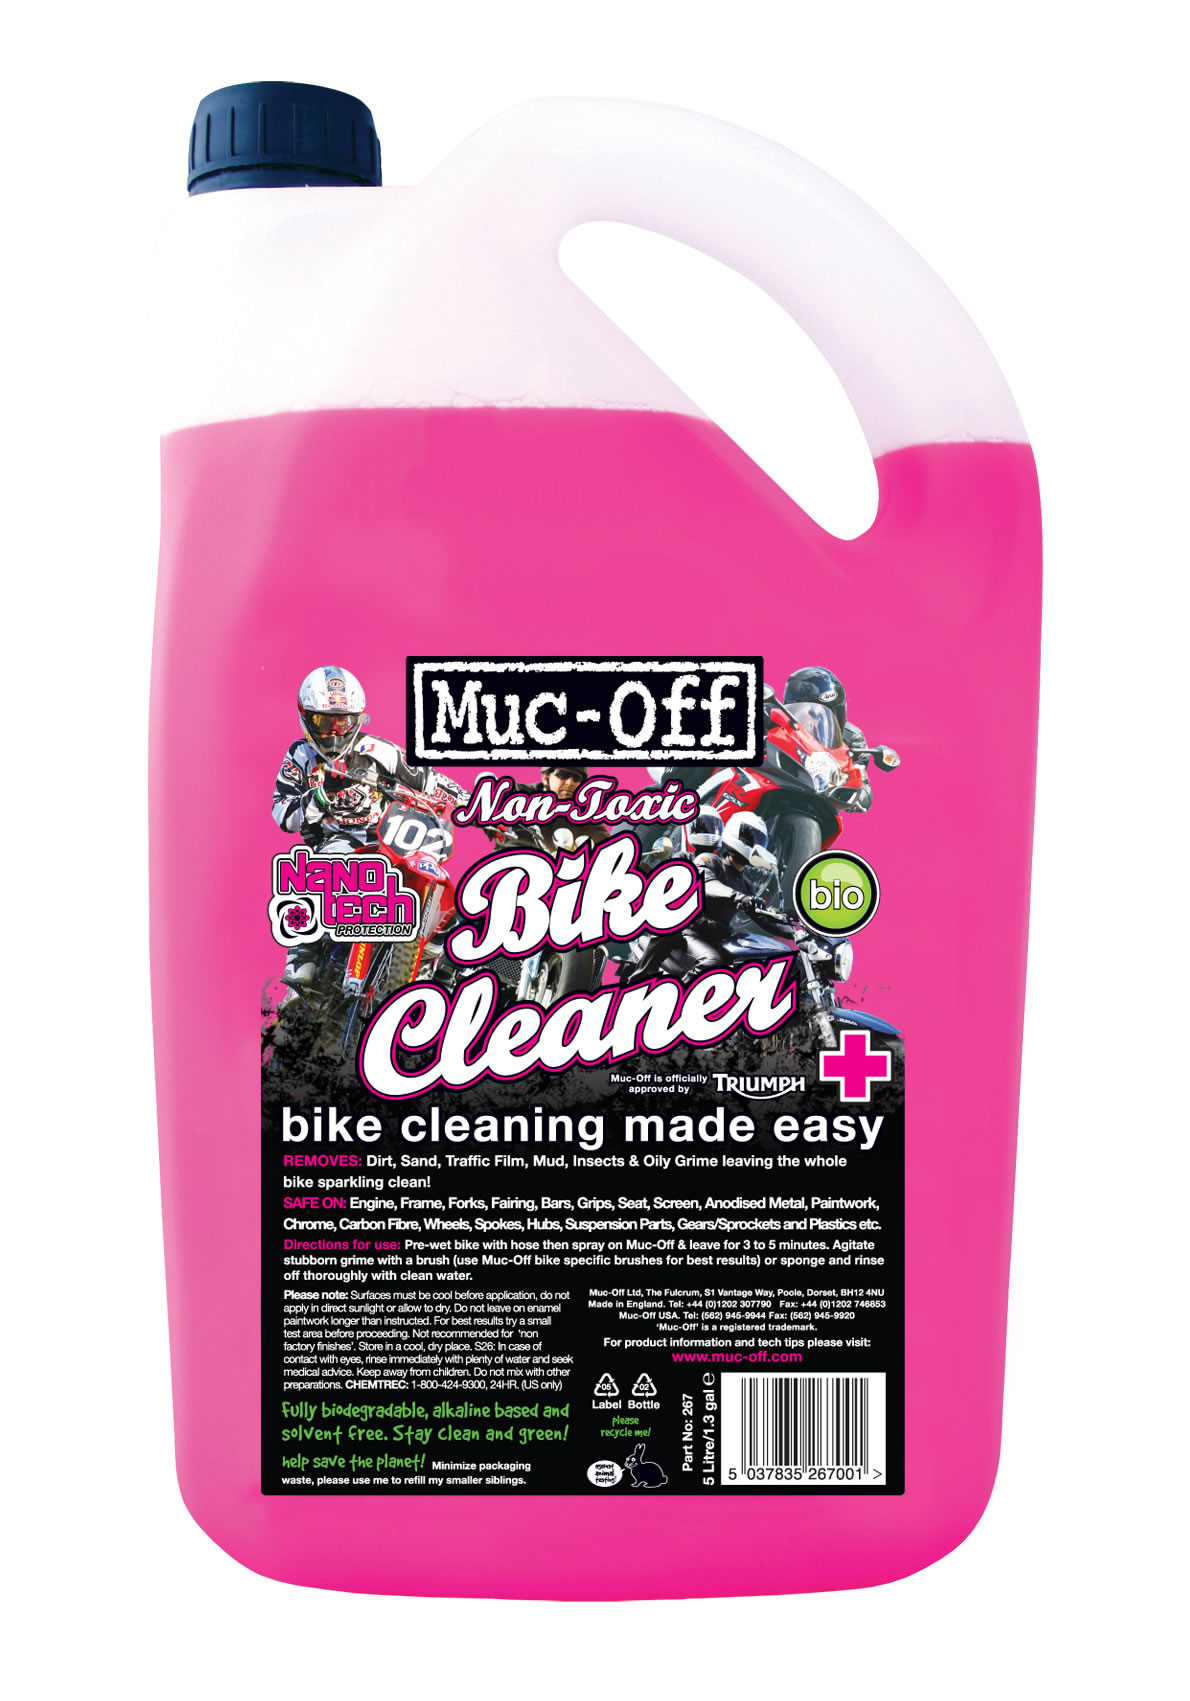 Muc-Off Nano Tech Bike Cleaner 5L